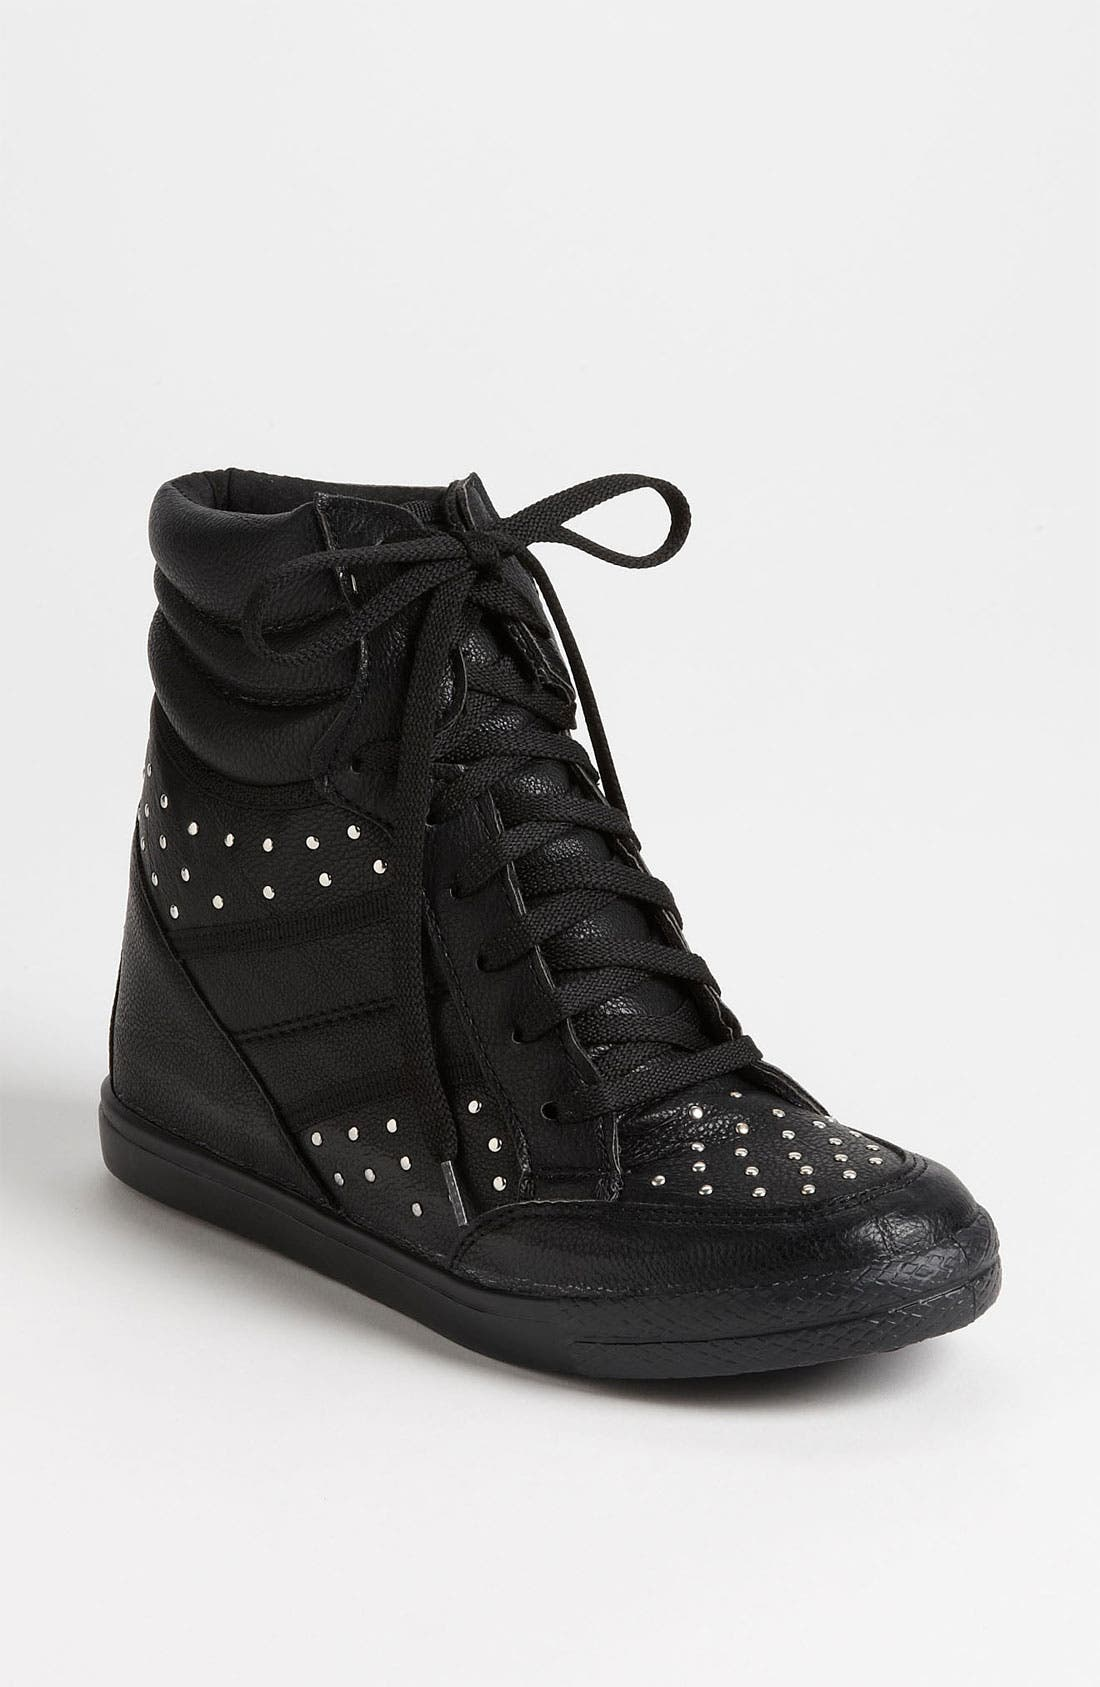 Alternate Image 1 Selected - Topshop 'Acrobatics' Sneaker